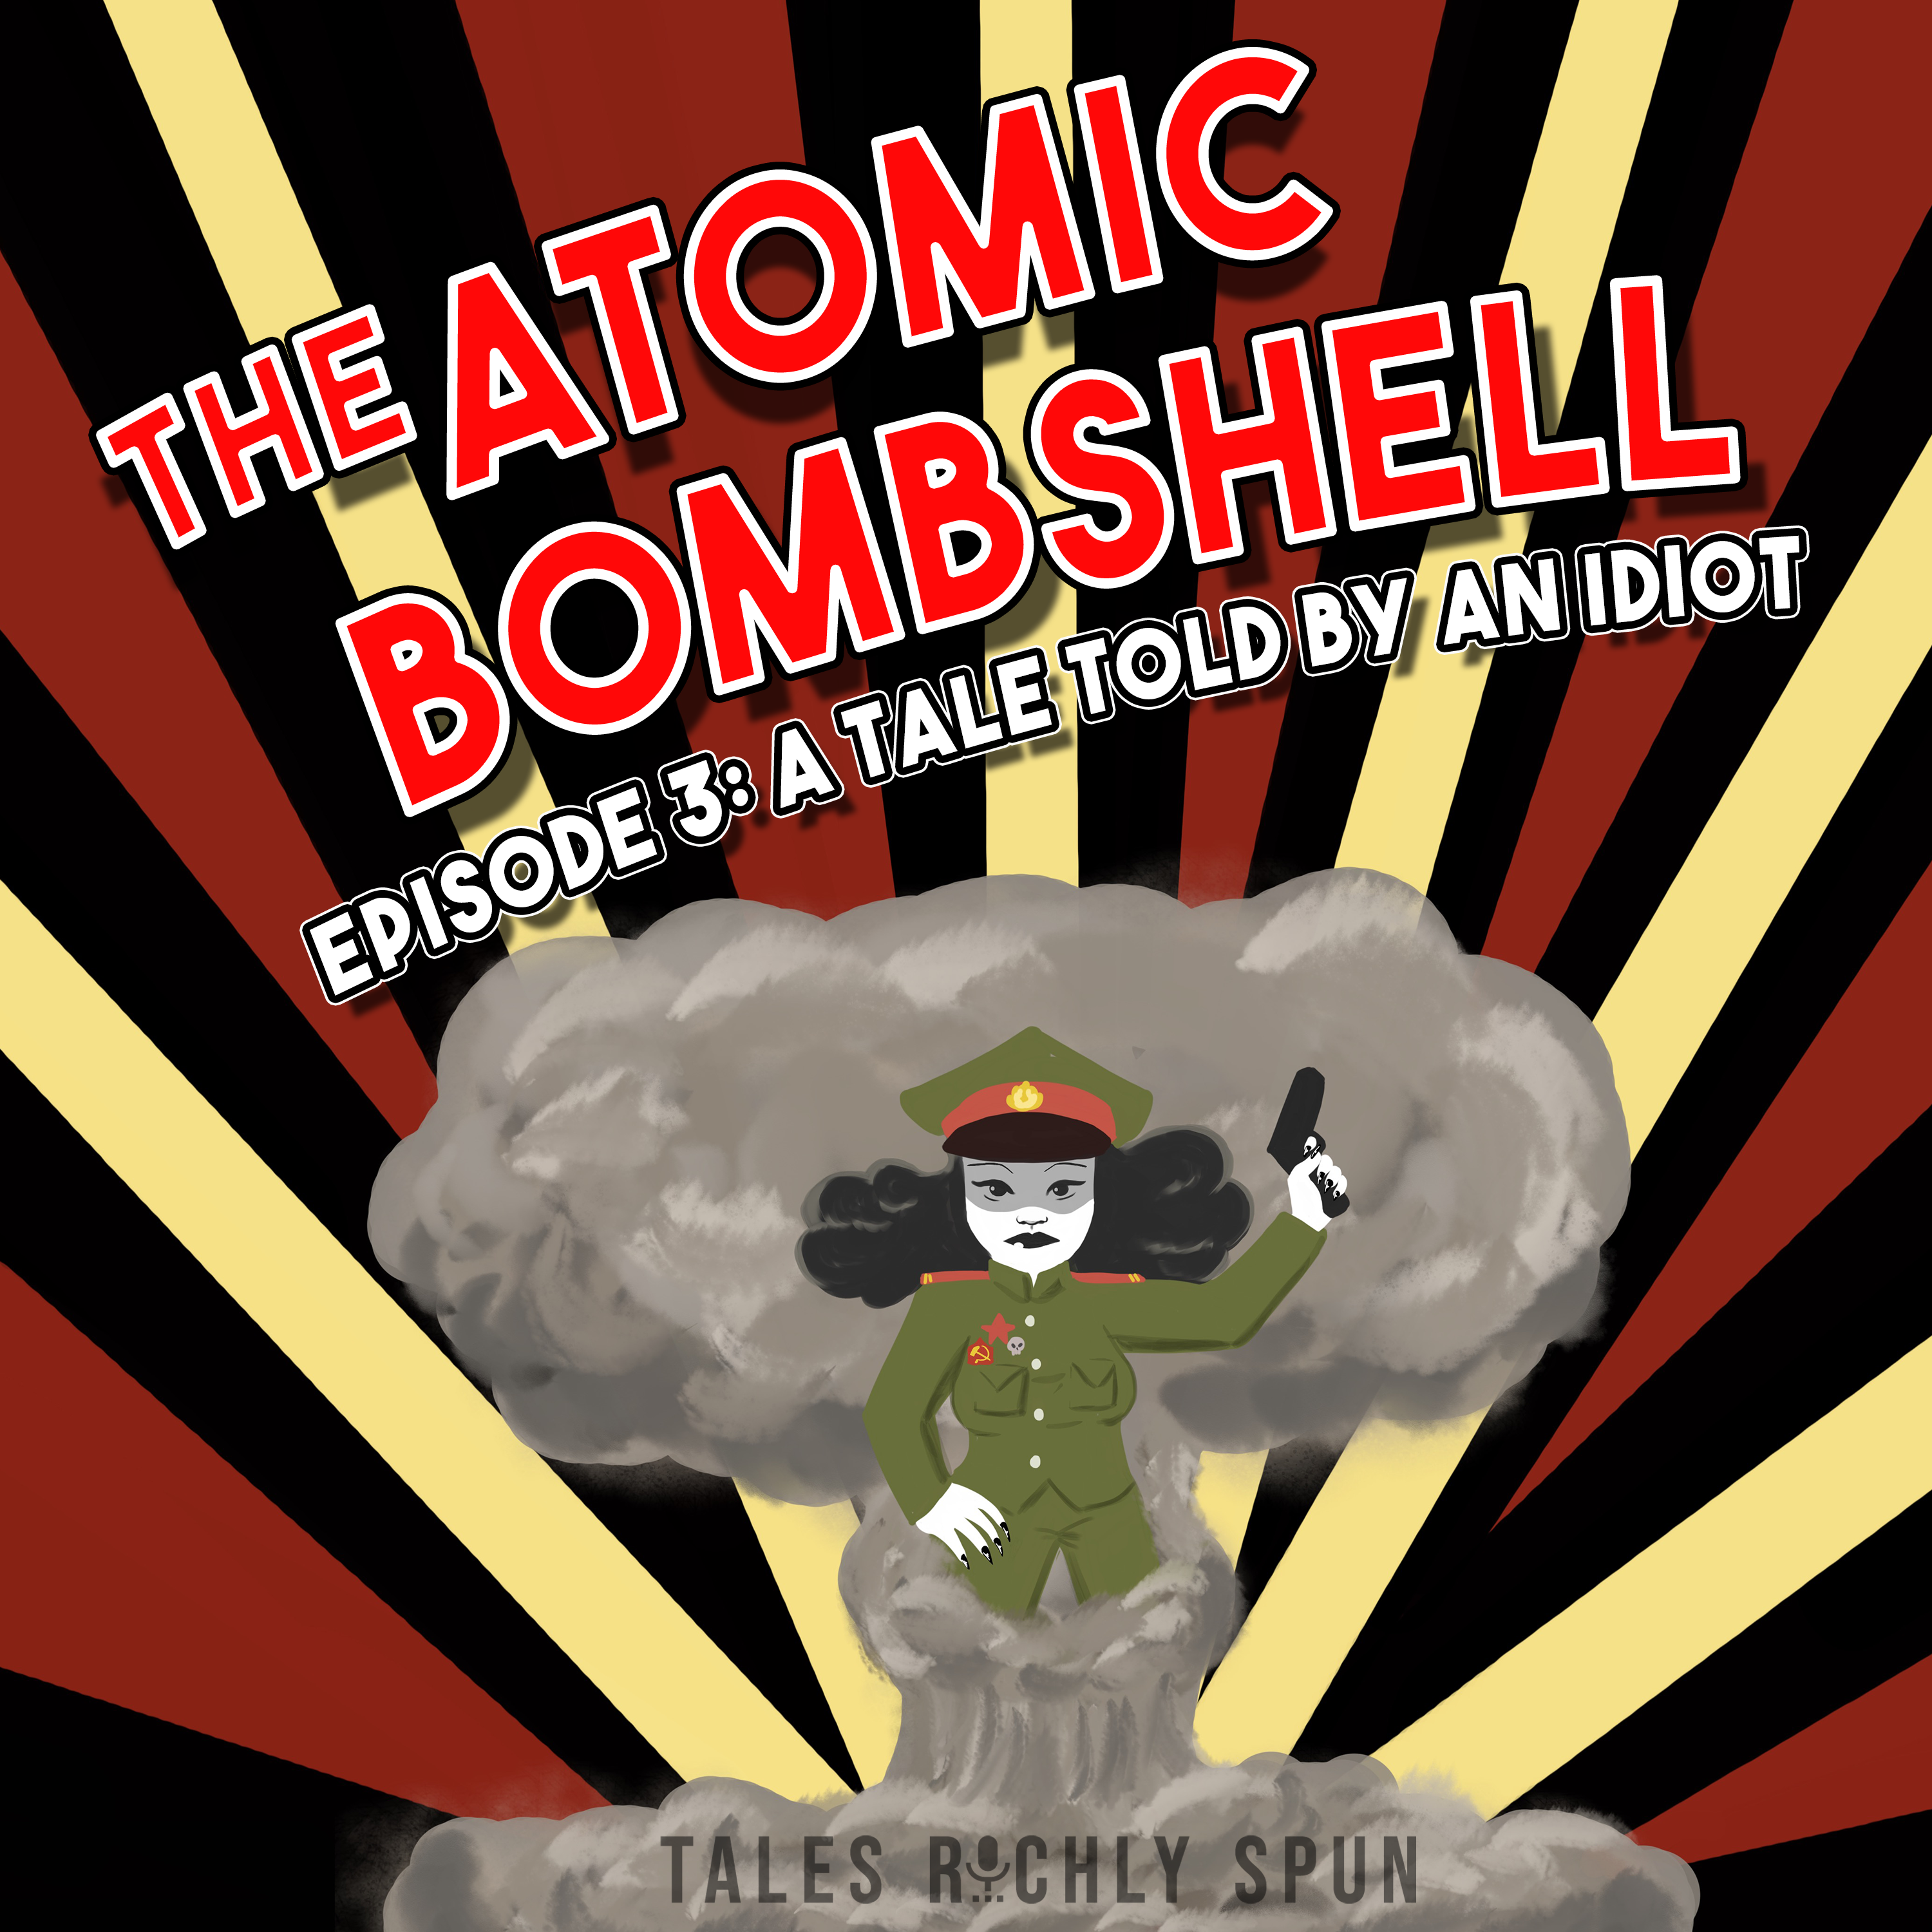 Atomic Bombshell, Episode 3: A Tale Told By An Idiot